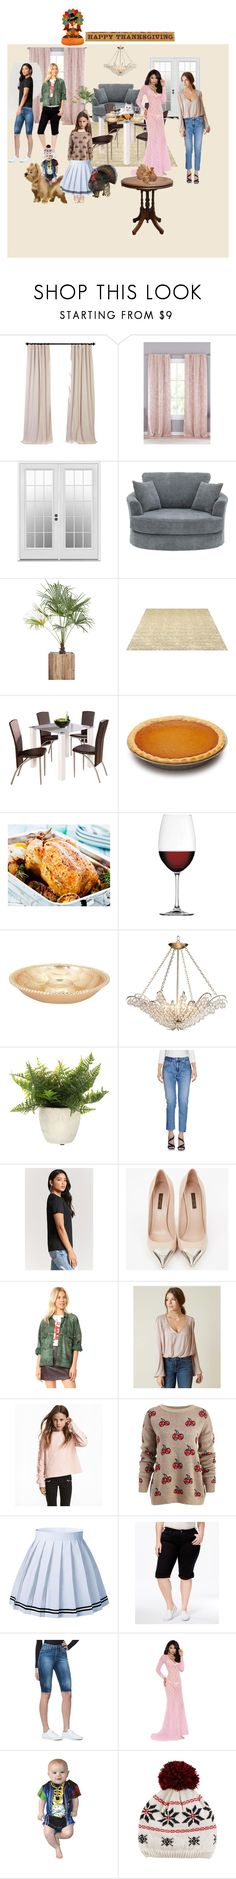 """""""happy thanksgiving"""" by superpop ❤ liked on Polyvore featuring Lala + Bash, Nachtmann, (+) PEOPLE, Forever 21, Louis Vuitton, Free People, Style & Co., Elegant Moments, Dinner and turkey"""